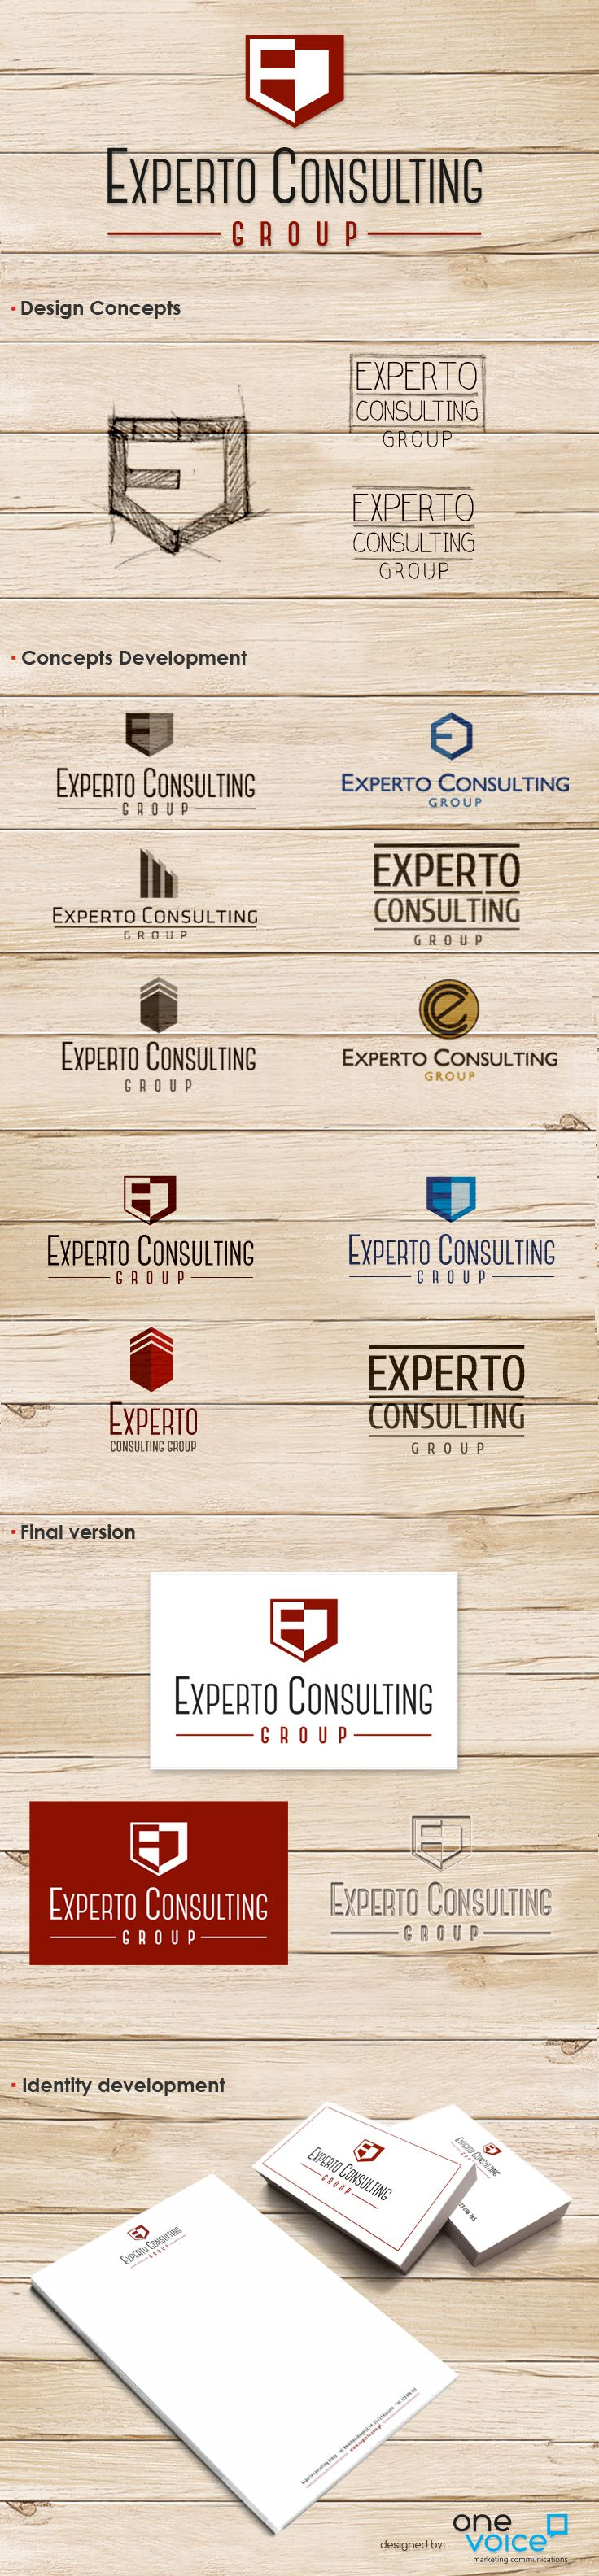 Experto naming and logo design